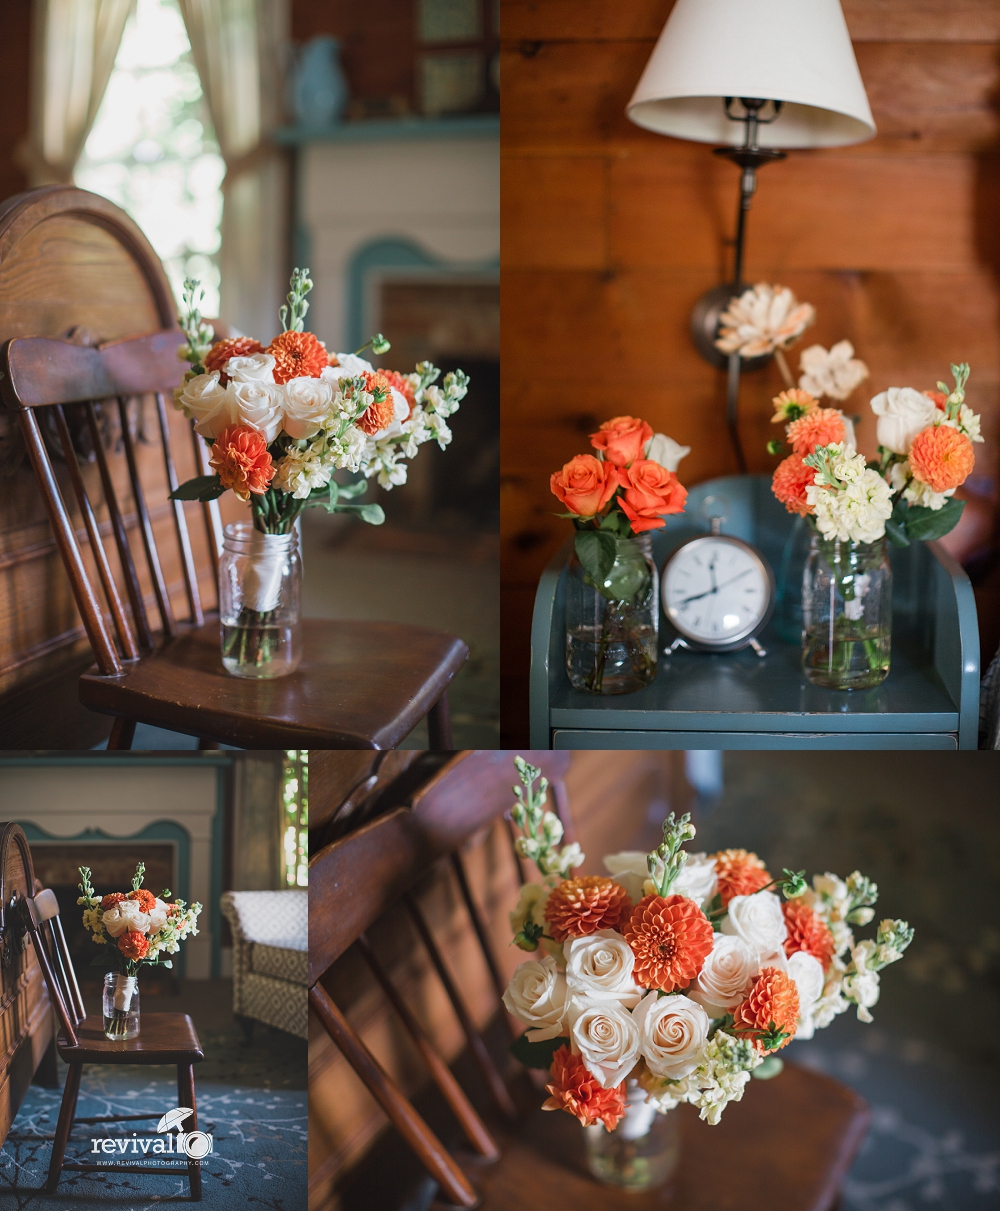 Intimate Bed and Breakfast Hotel Wedding at The Mast Farm Inn Valle Crucis NC Photography by Revival Photography www.revivalphotography.com